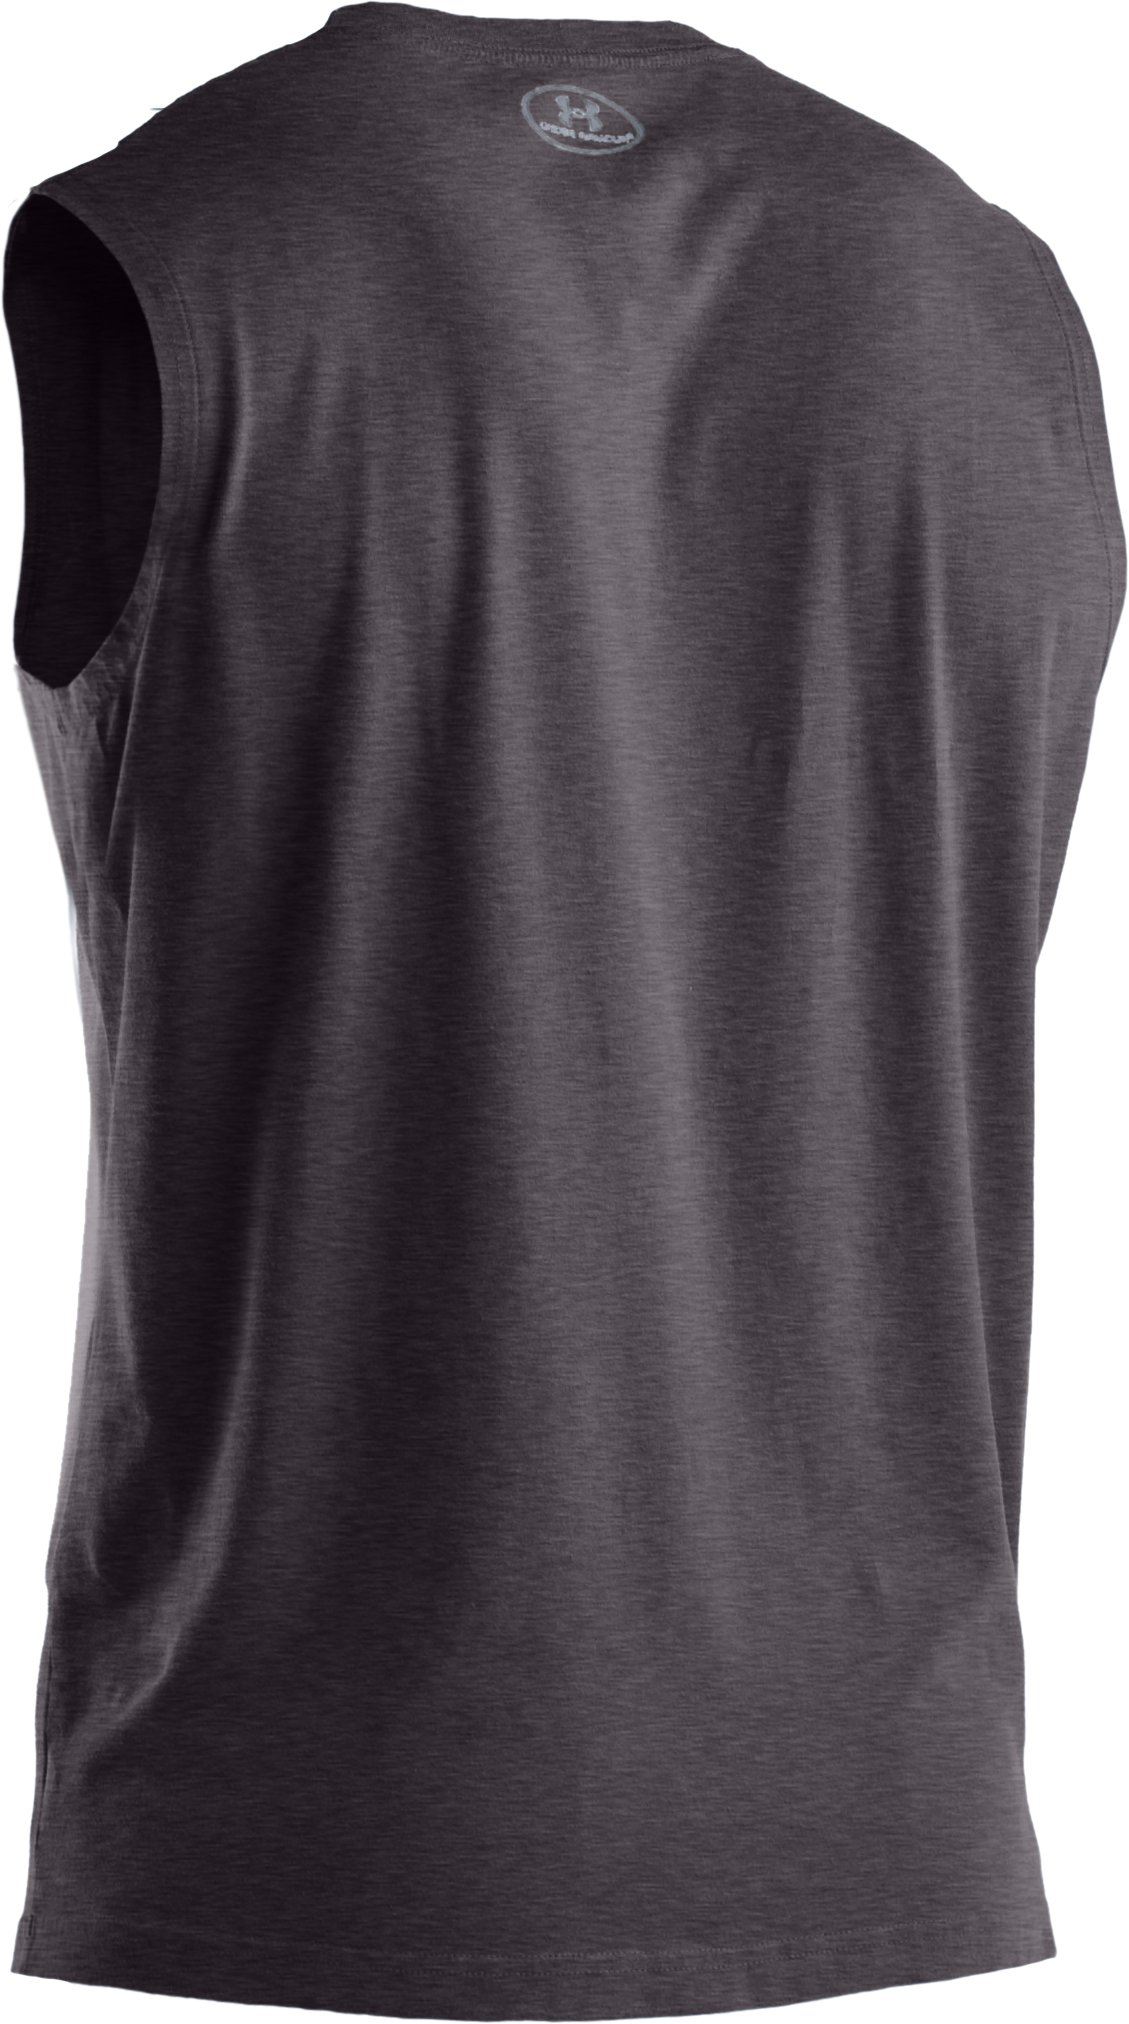 Men's Charged Cotton® Sleeveless T-shirt, Carbon Heather, undefined